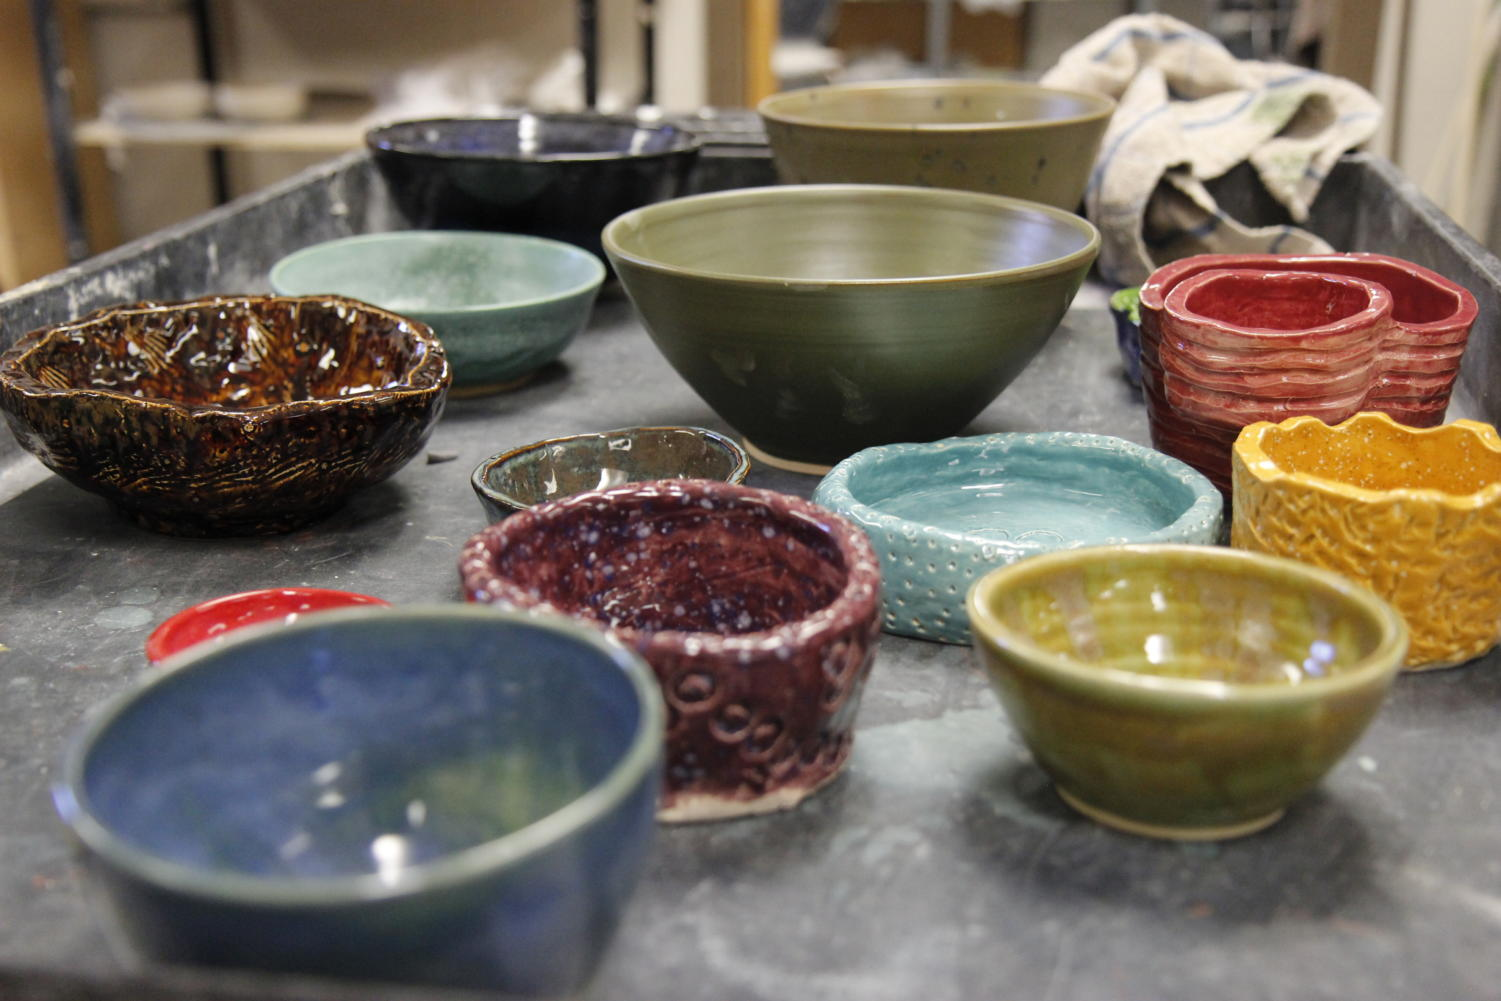 The bowls made by high school ceramics students and district art teachers will be sold at the Center on Nov. 27 to support the Mansfield Cares Charity.